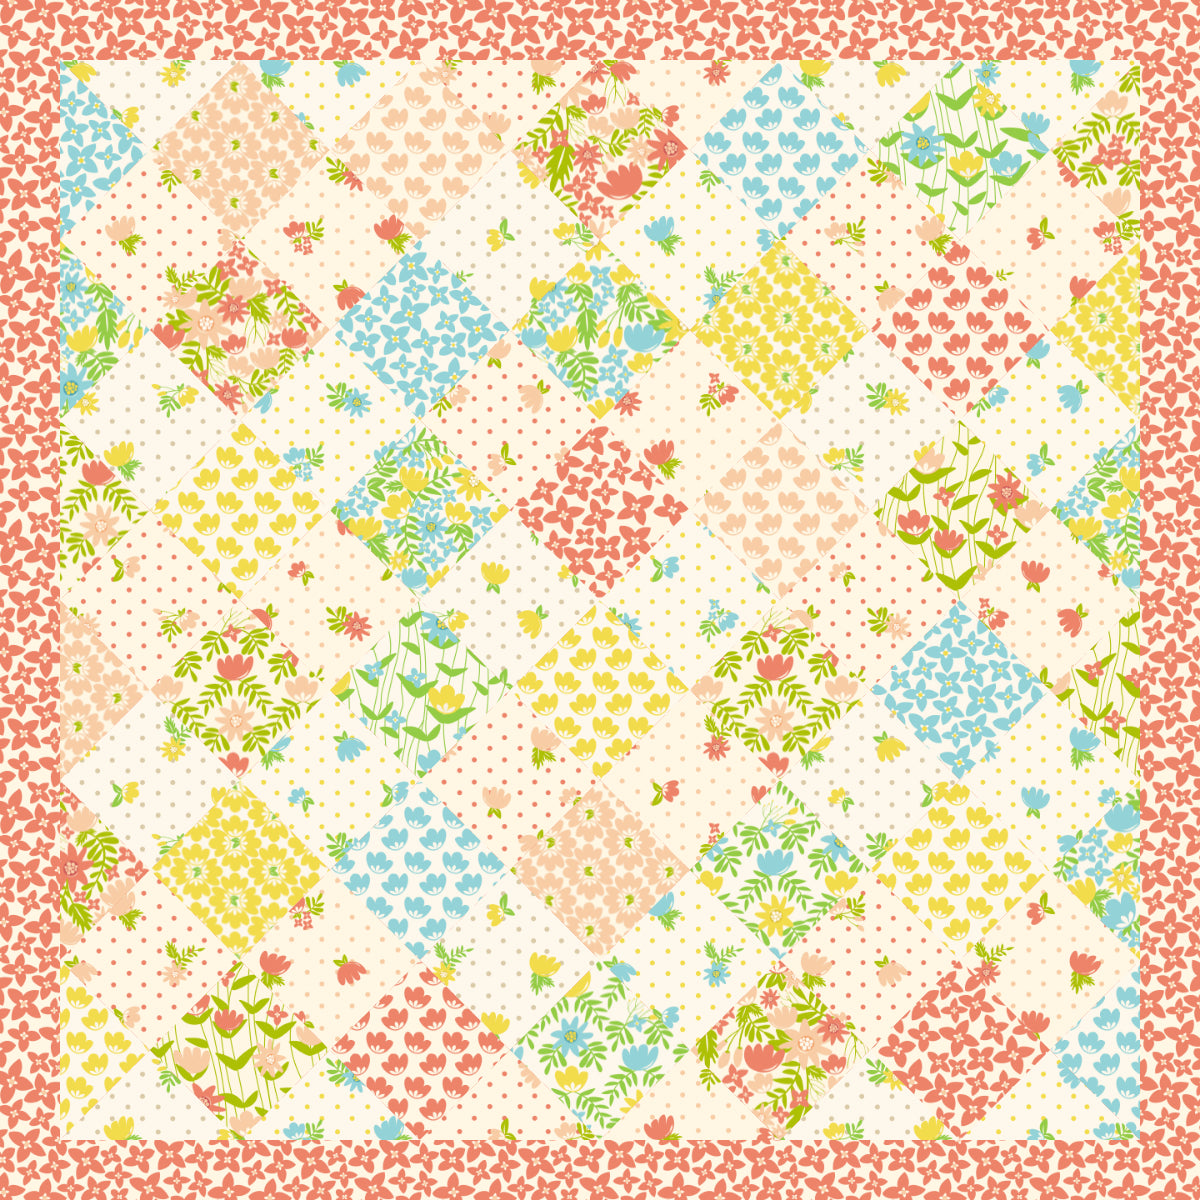 English Garden - 40 x 40 Ready-To-Quilt Fabric Panel